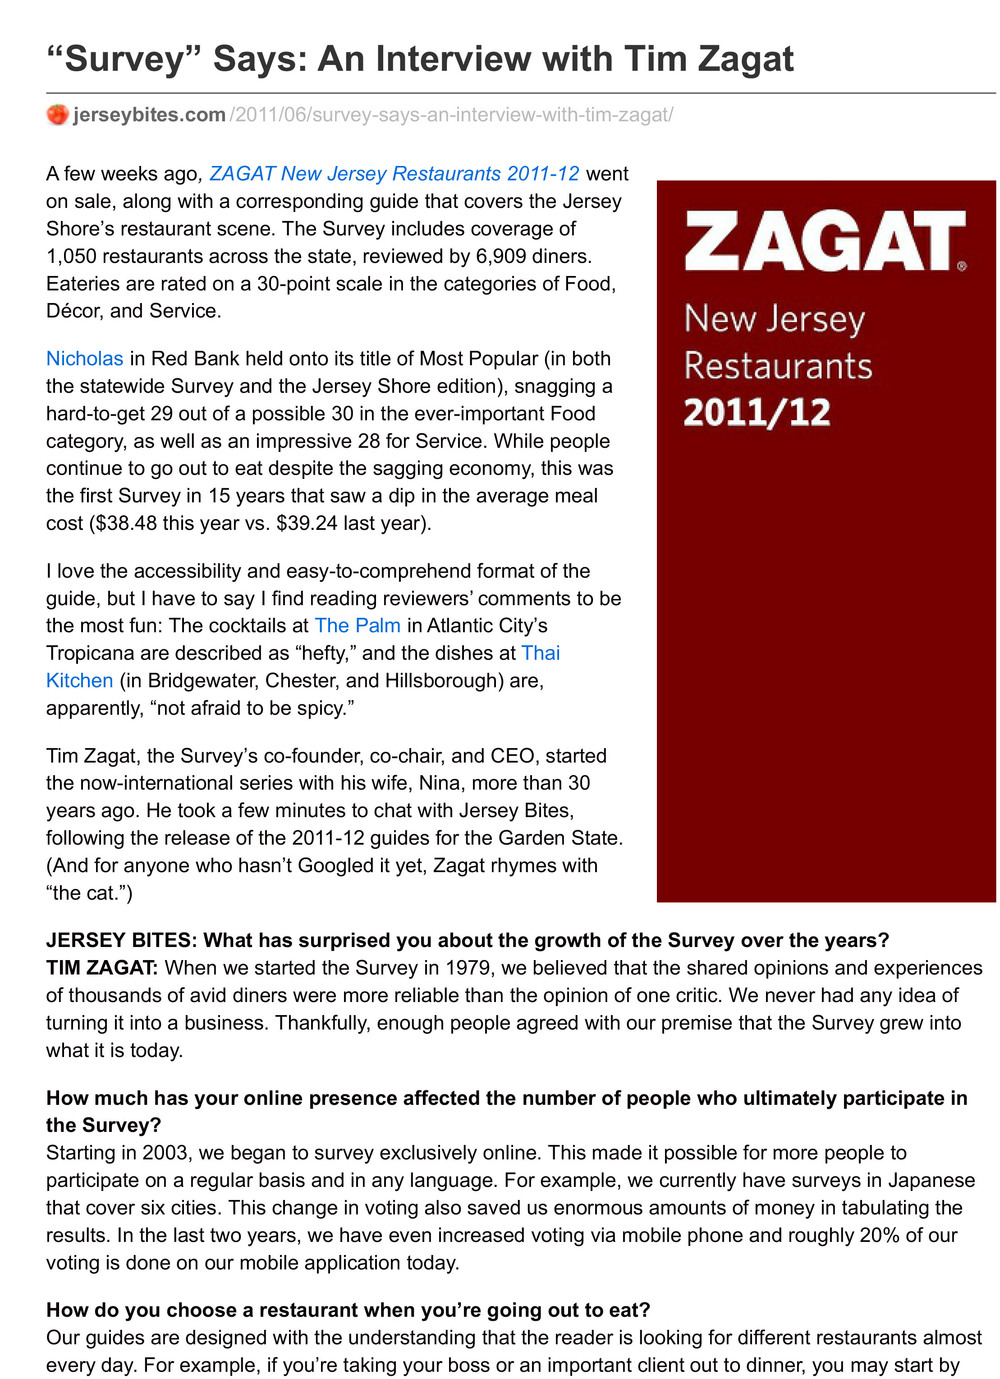 jerseybites.com-Survey_Says_An_Interview_with_Tim_Zagat-1.jpg